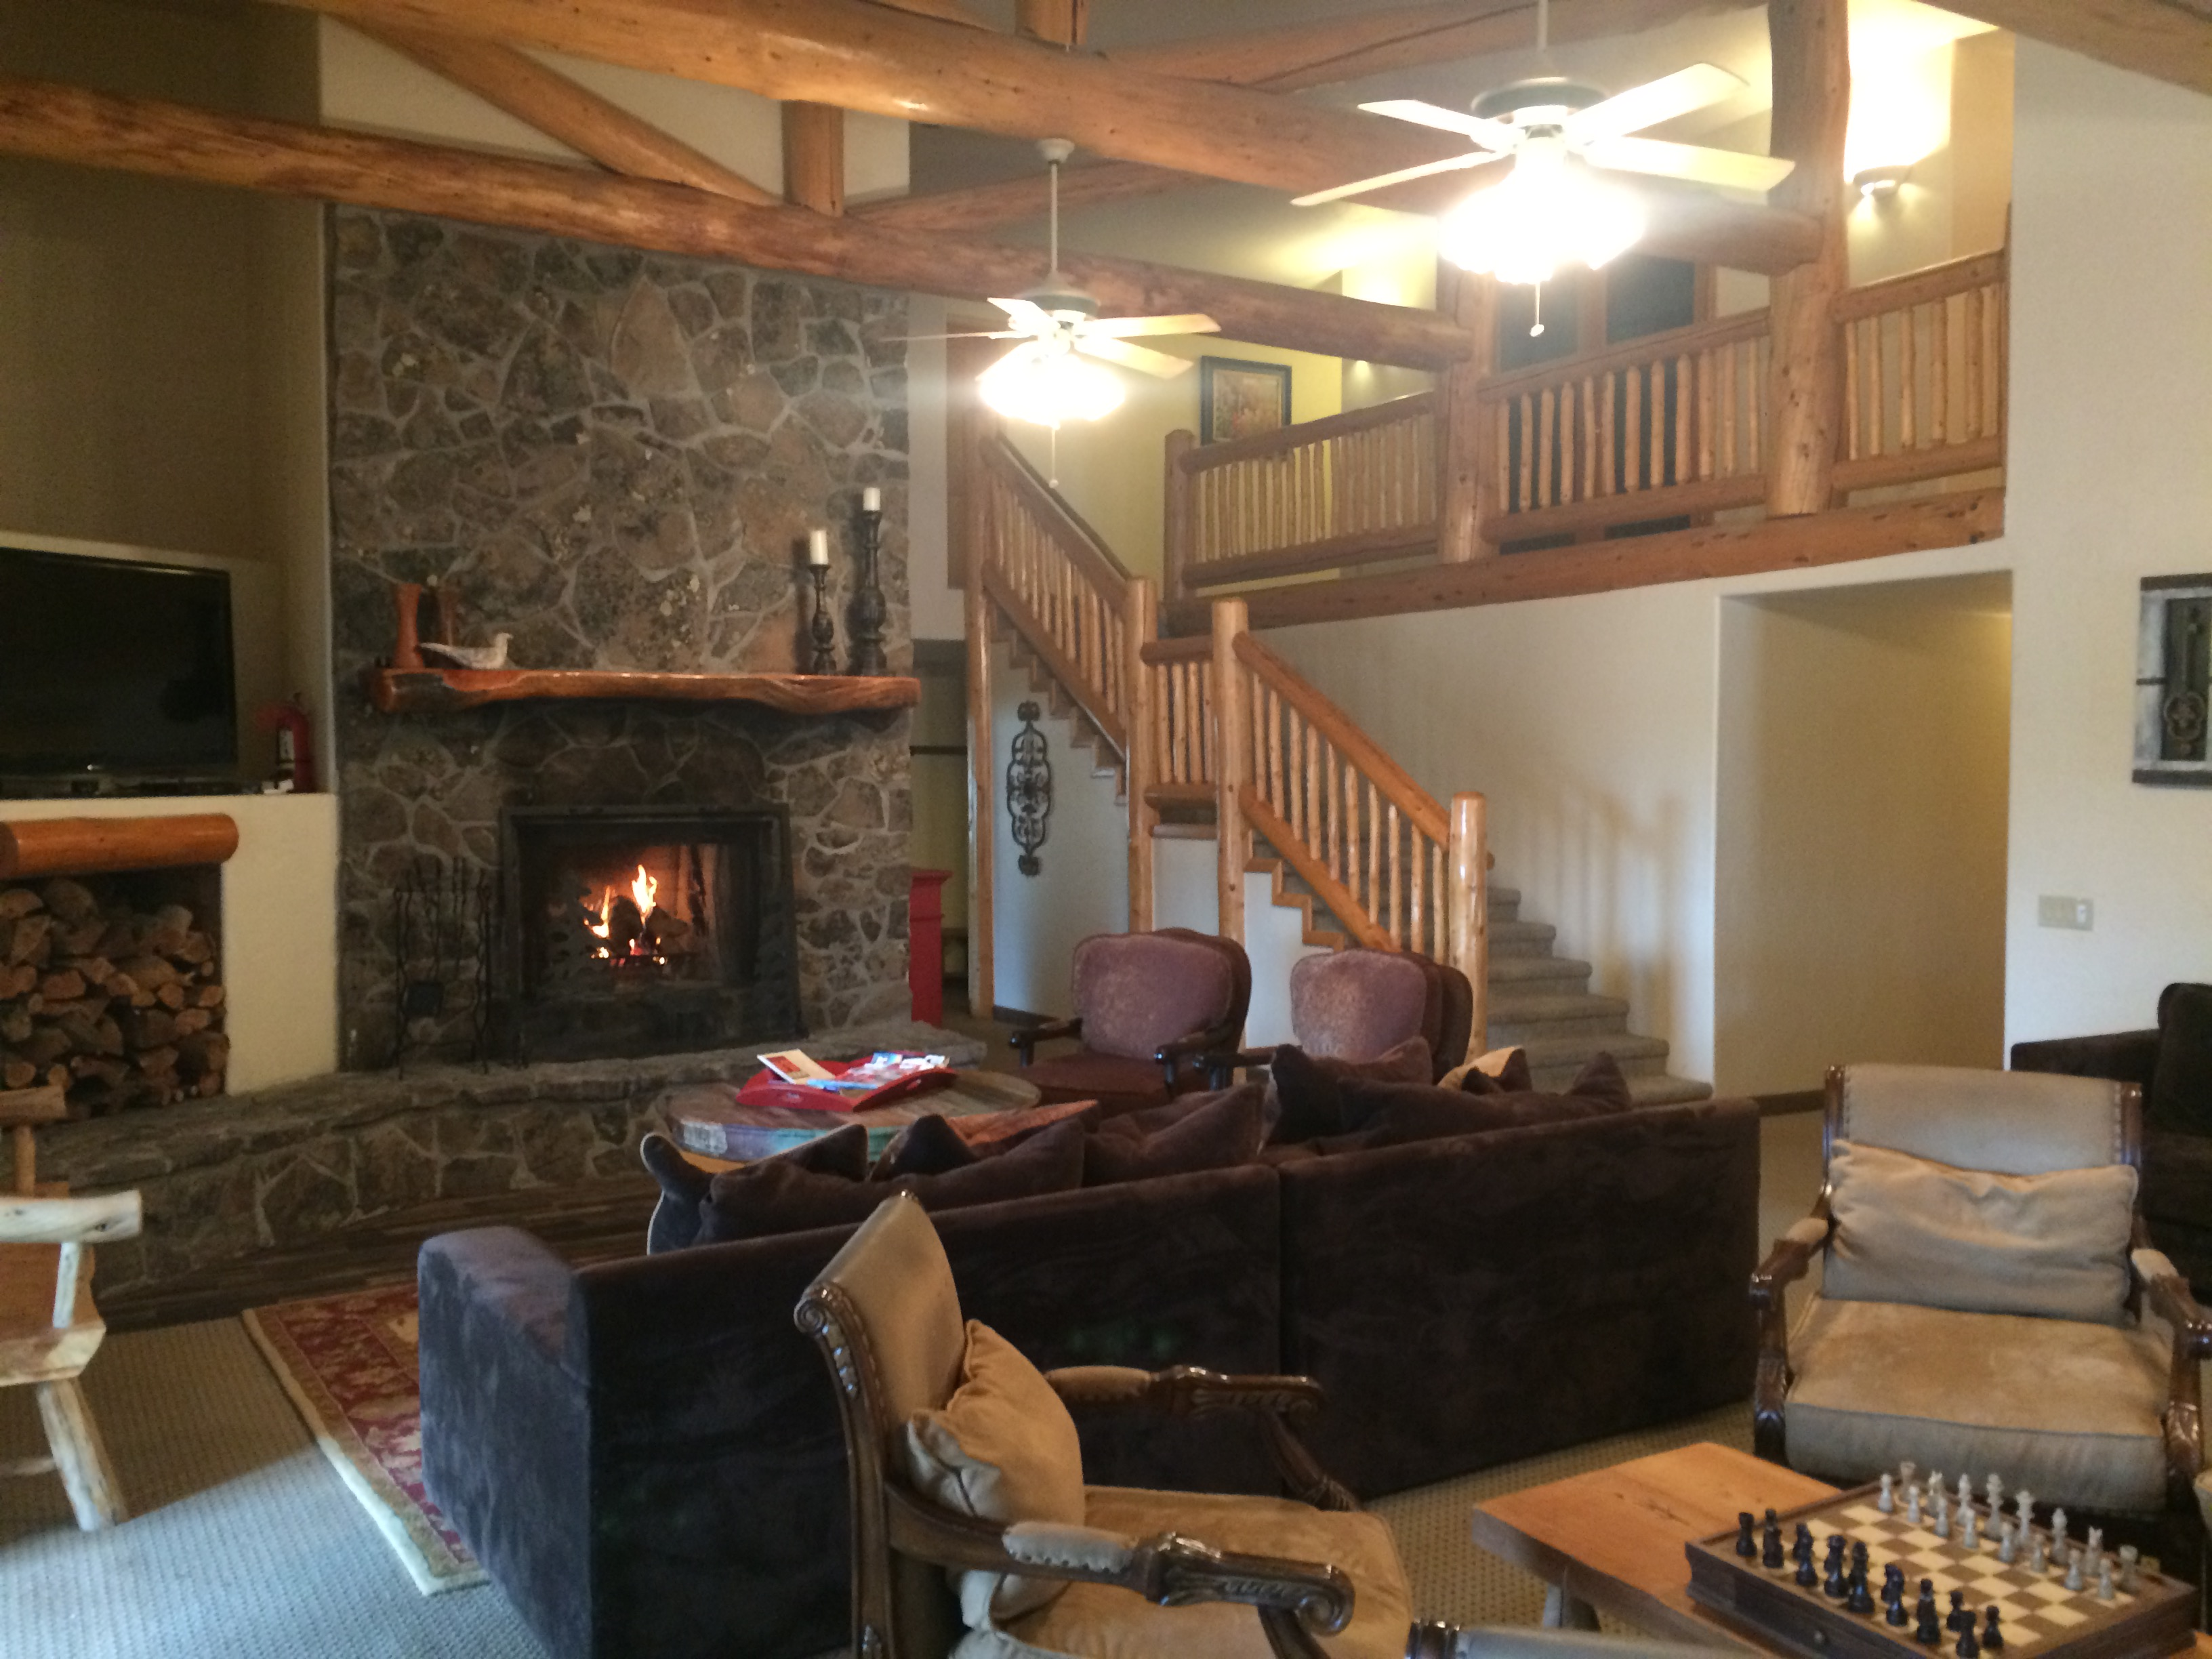 Greer Peaks Lodge: A White Mountain Wonder